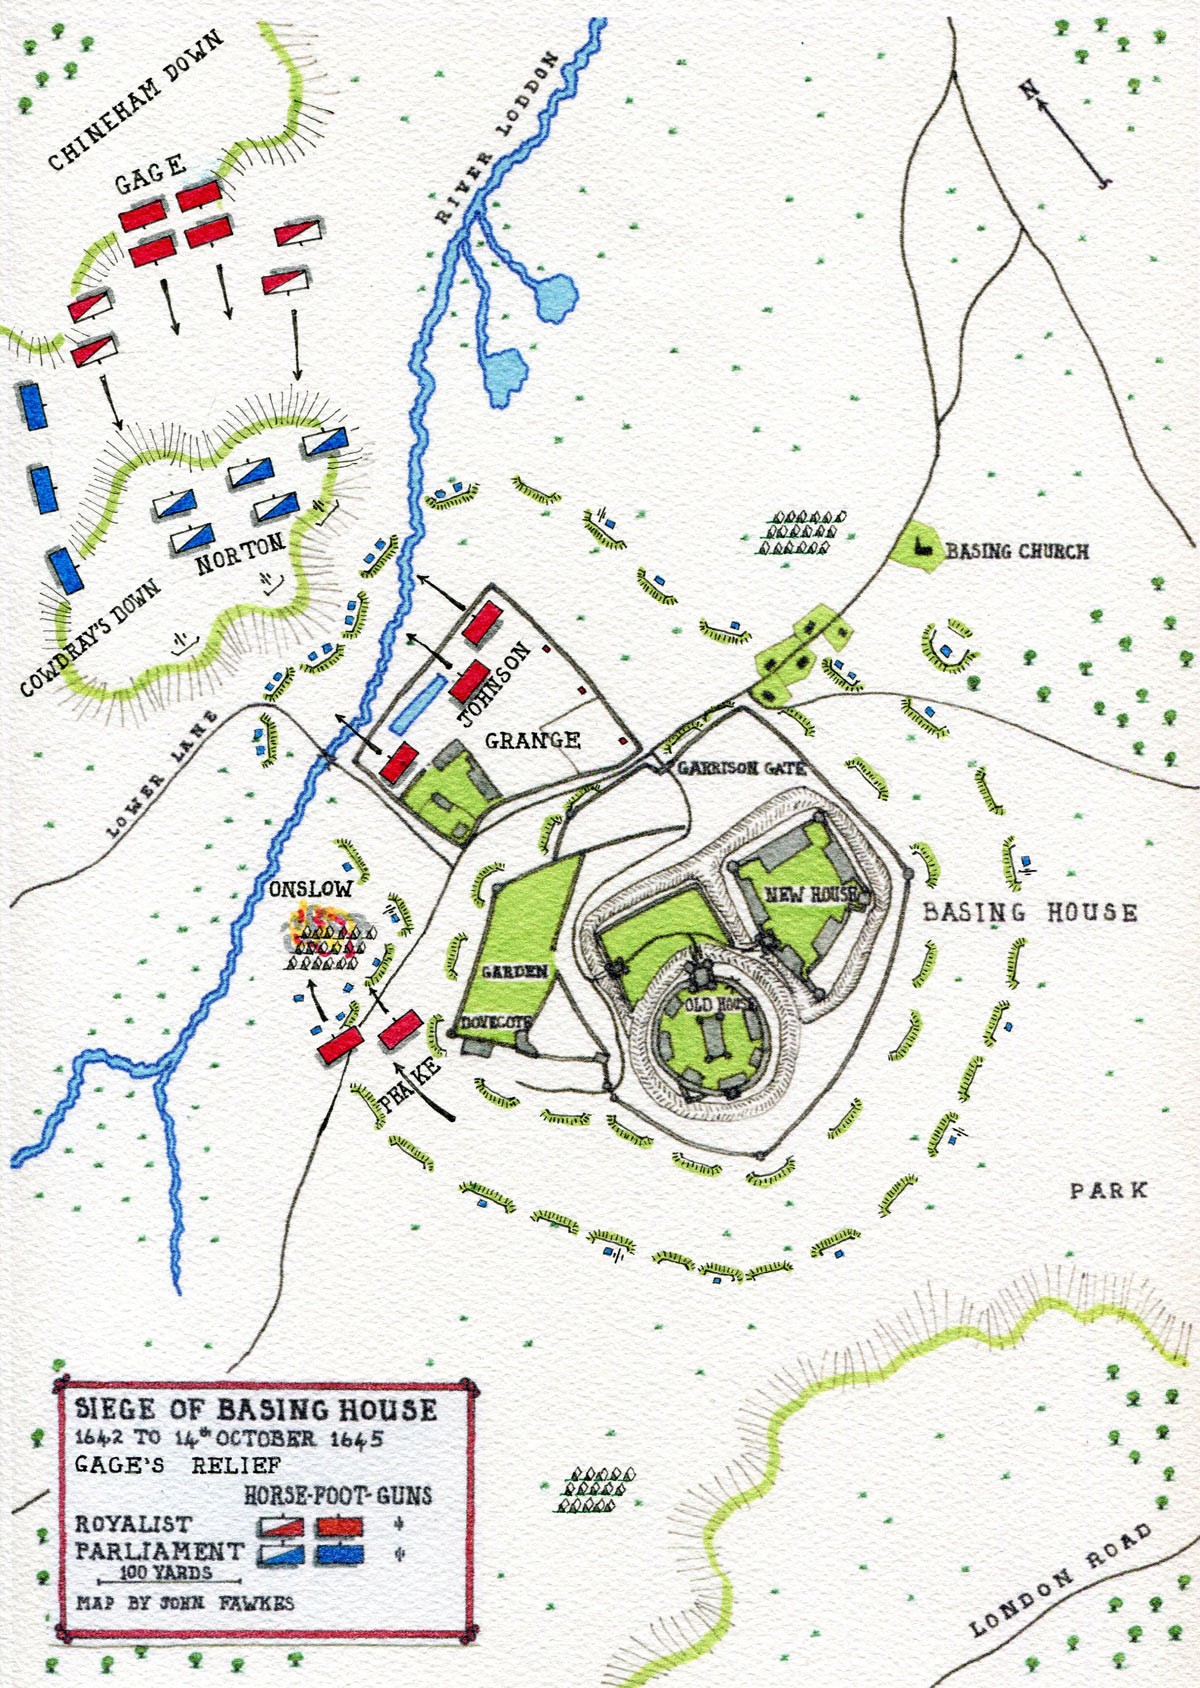 Map of Colonel Gage's Relief of Basing House: Siege of Basing House 1642 to 1645 during the English Civil War: map by John Fawkes: the scale applies to the area of the House alone. Cowdray's Down and Chineham Down are not in scale